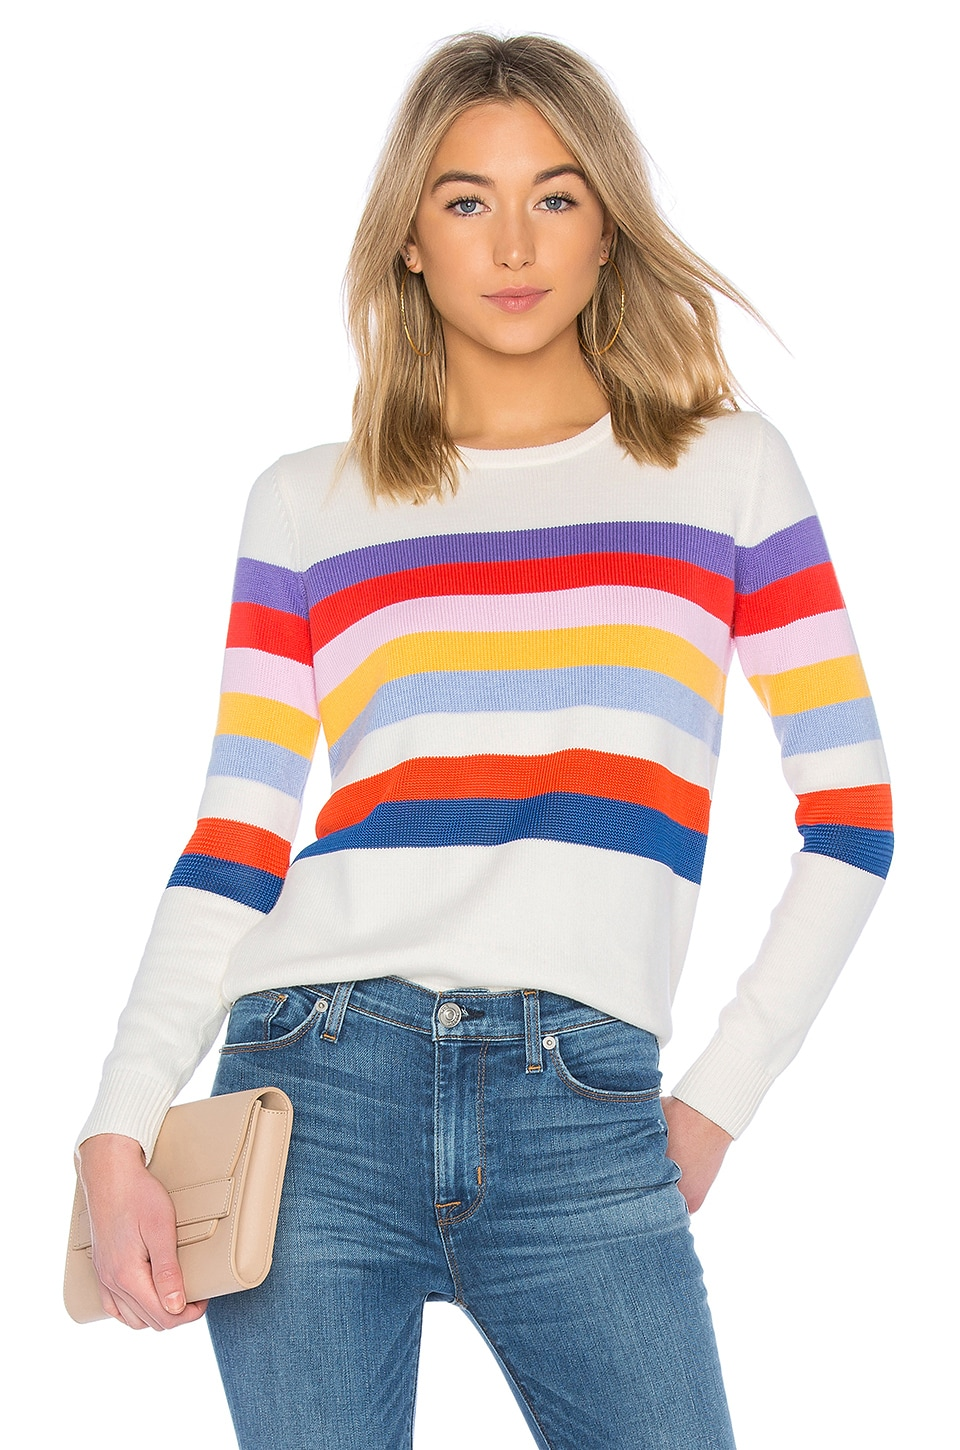 0da5debb4b Kule The Day Trip Sweater in Cream Multi